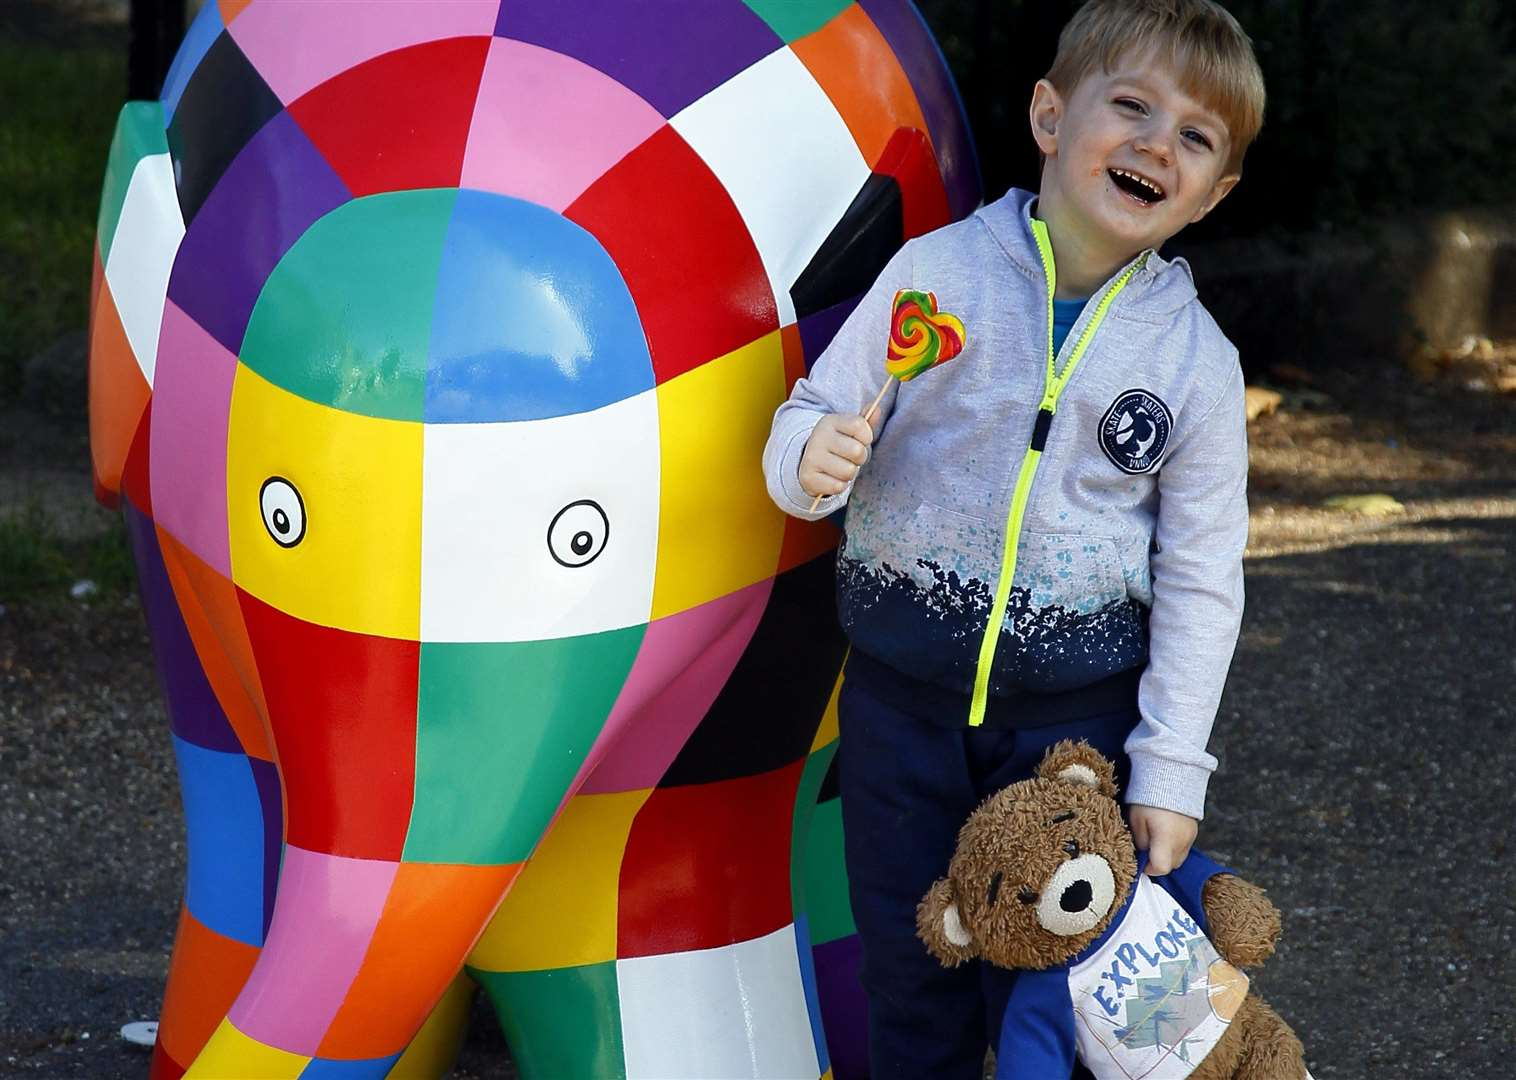 Elmer the Elephant Art Trail will come to Maidstone next year instead